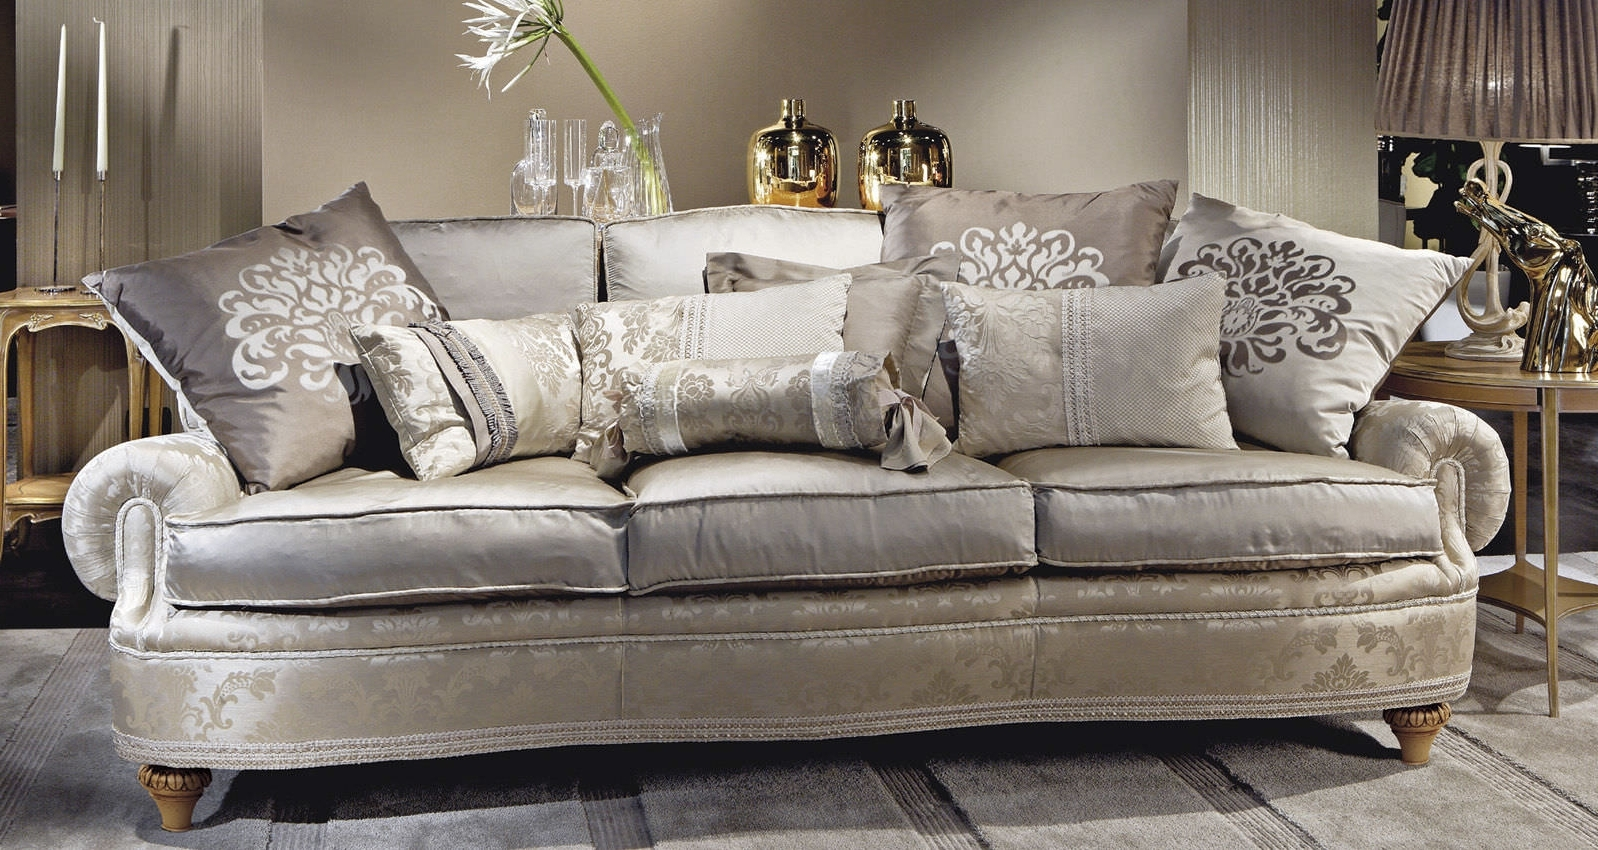 Epic Traditional Sofas 60 For Modern Sofa Inspiration With Regarding Well Known Traditional Sofas (View 5 of 20)